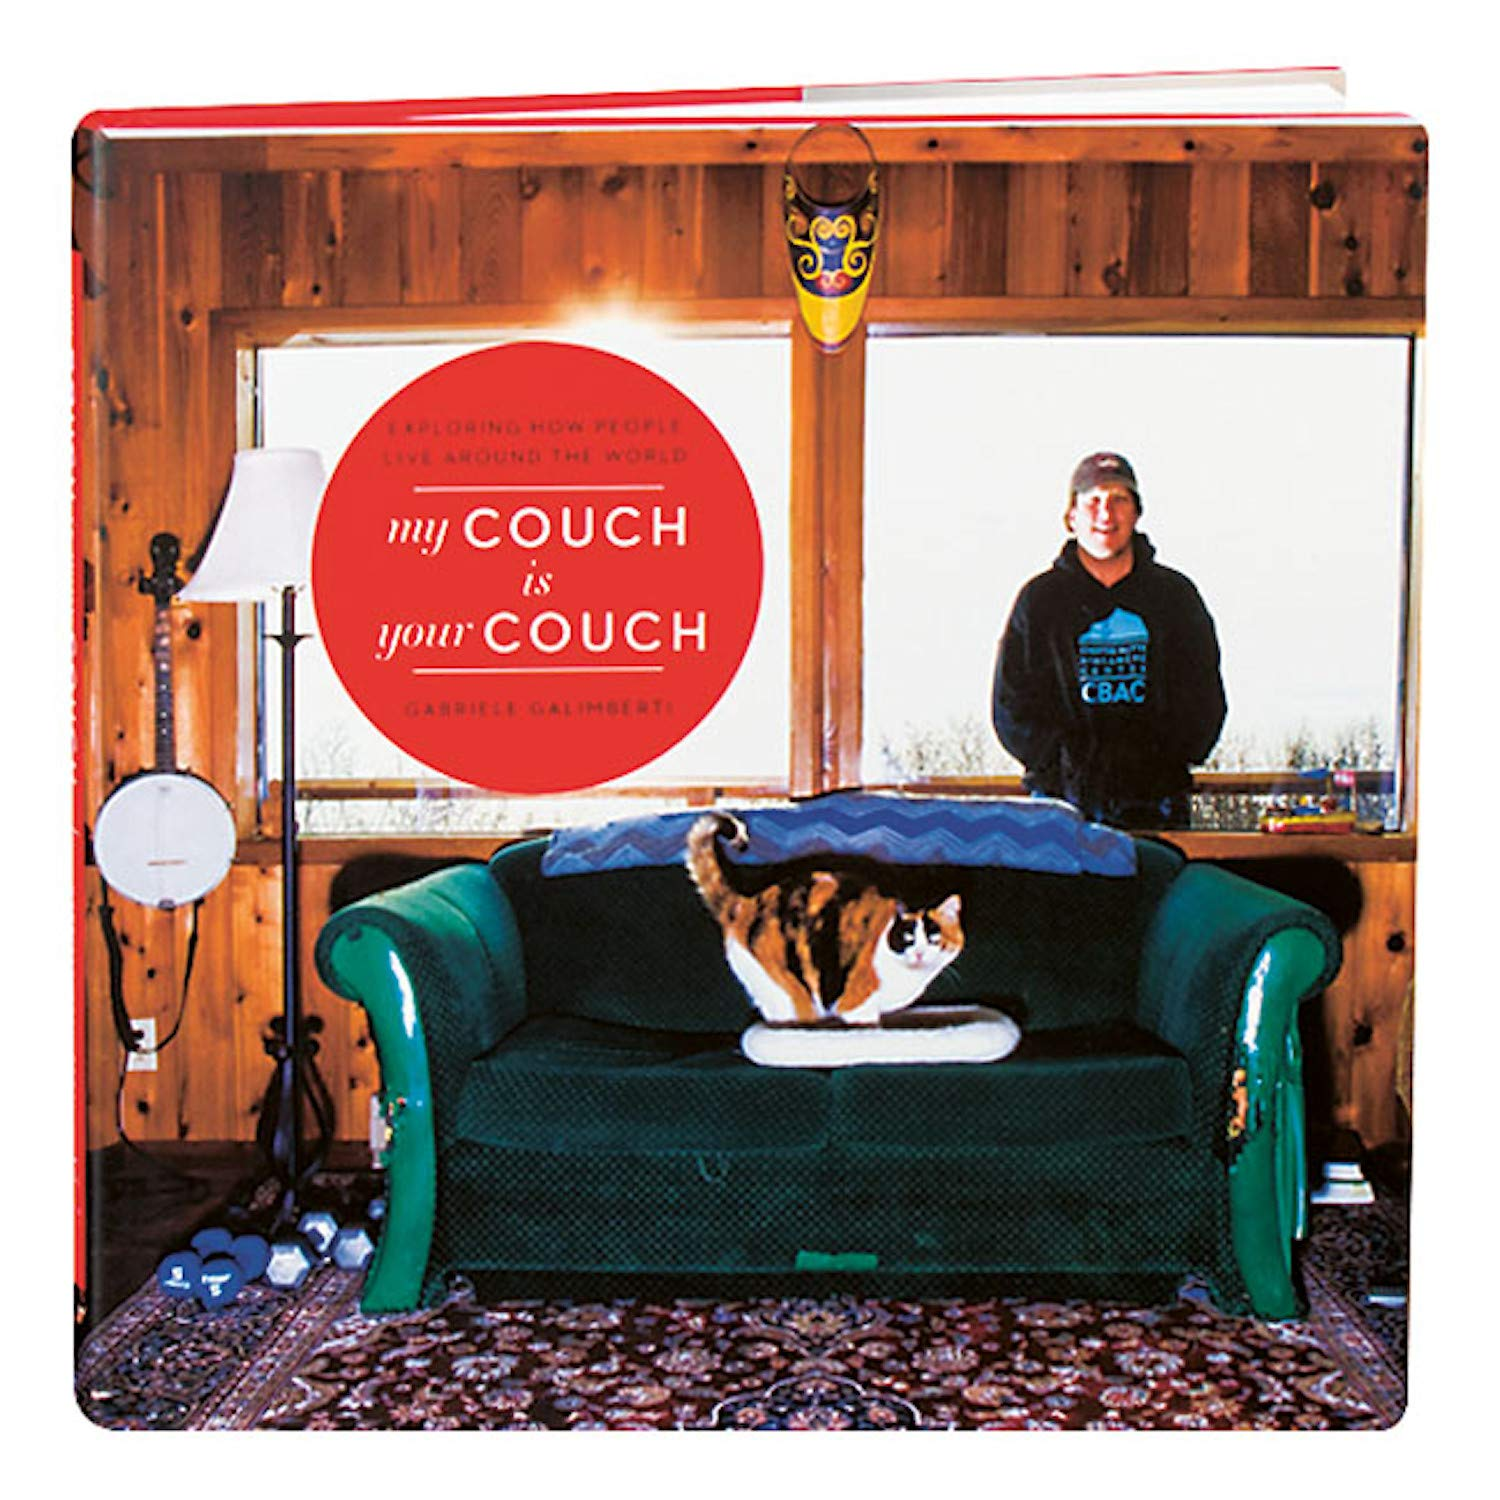 My Couch is Your Couch: Exploring How People Live Around the World